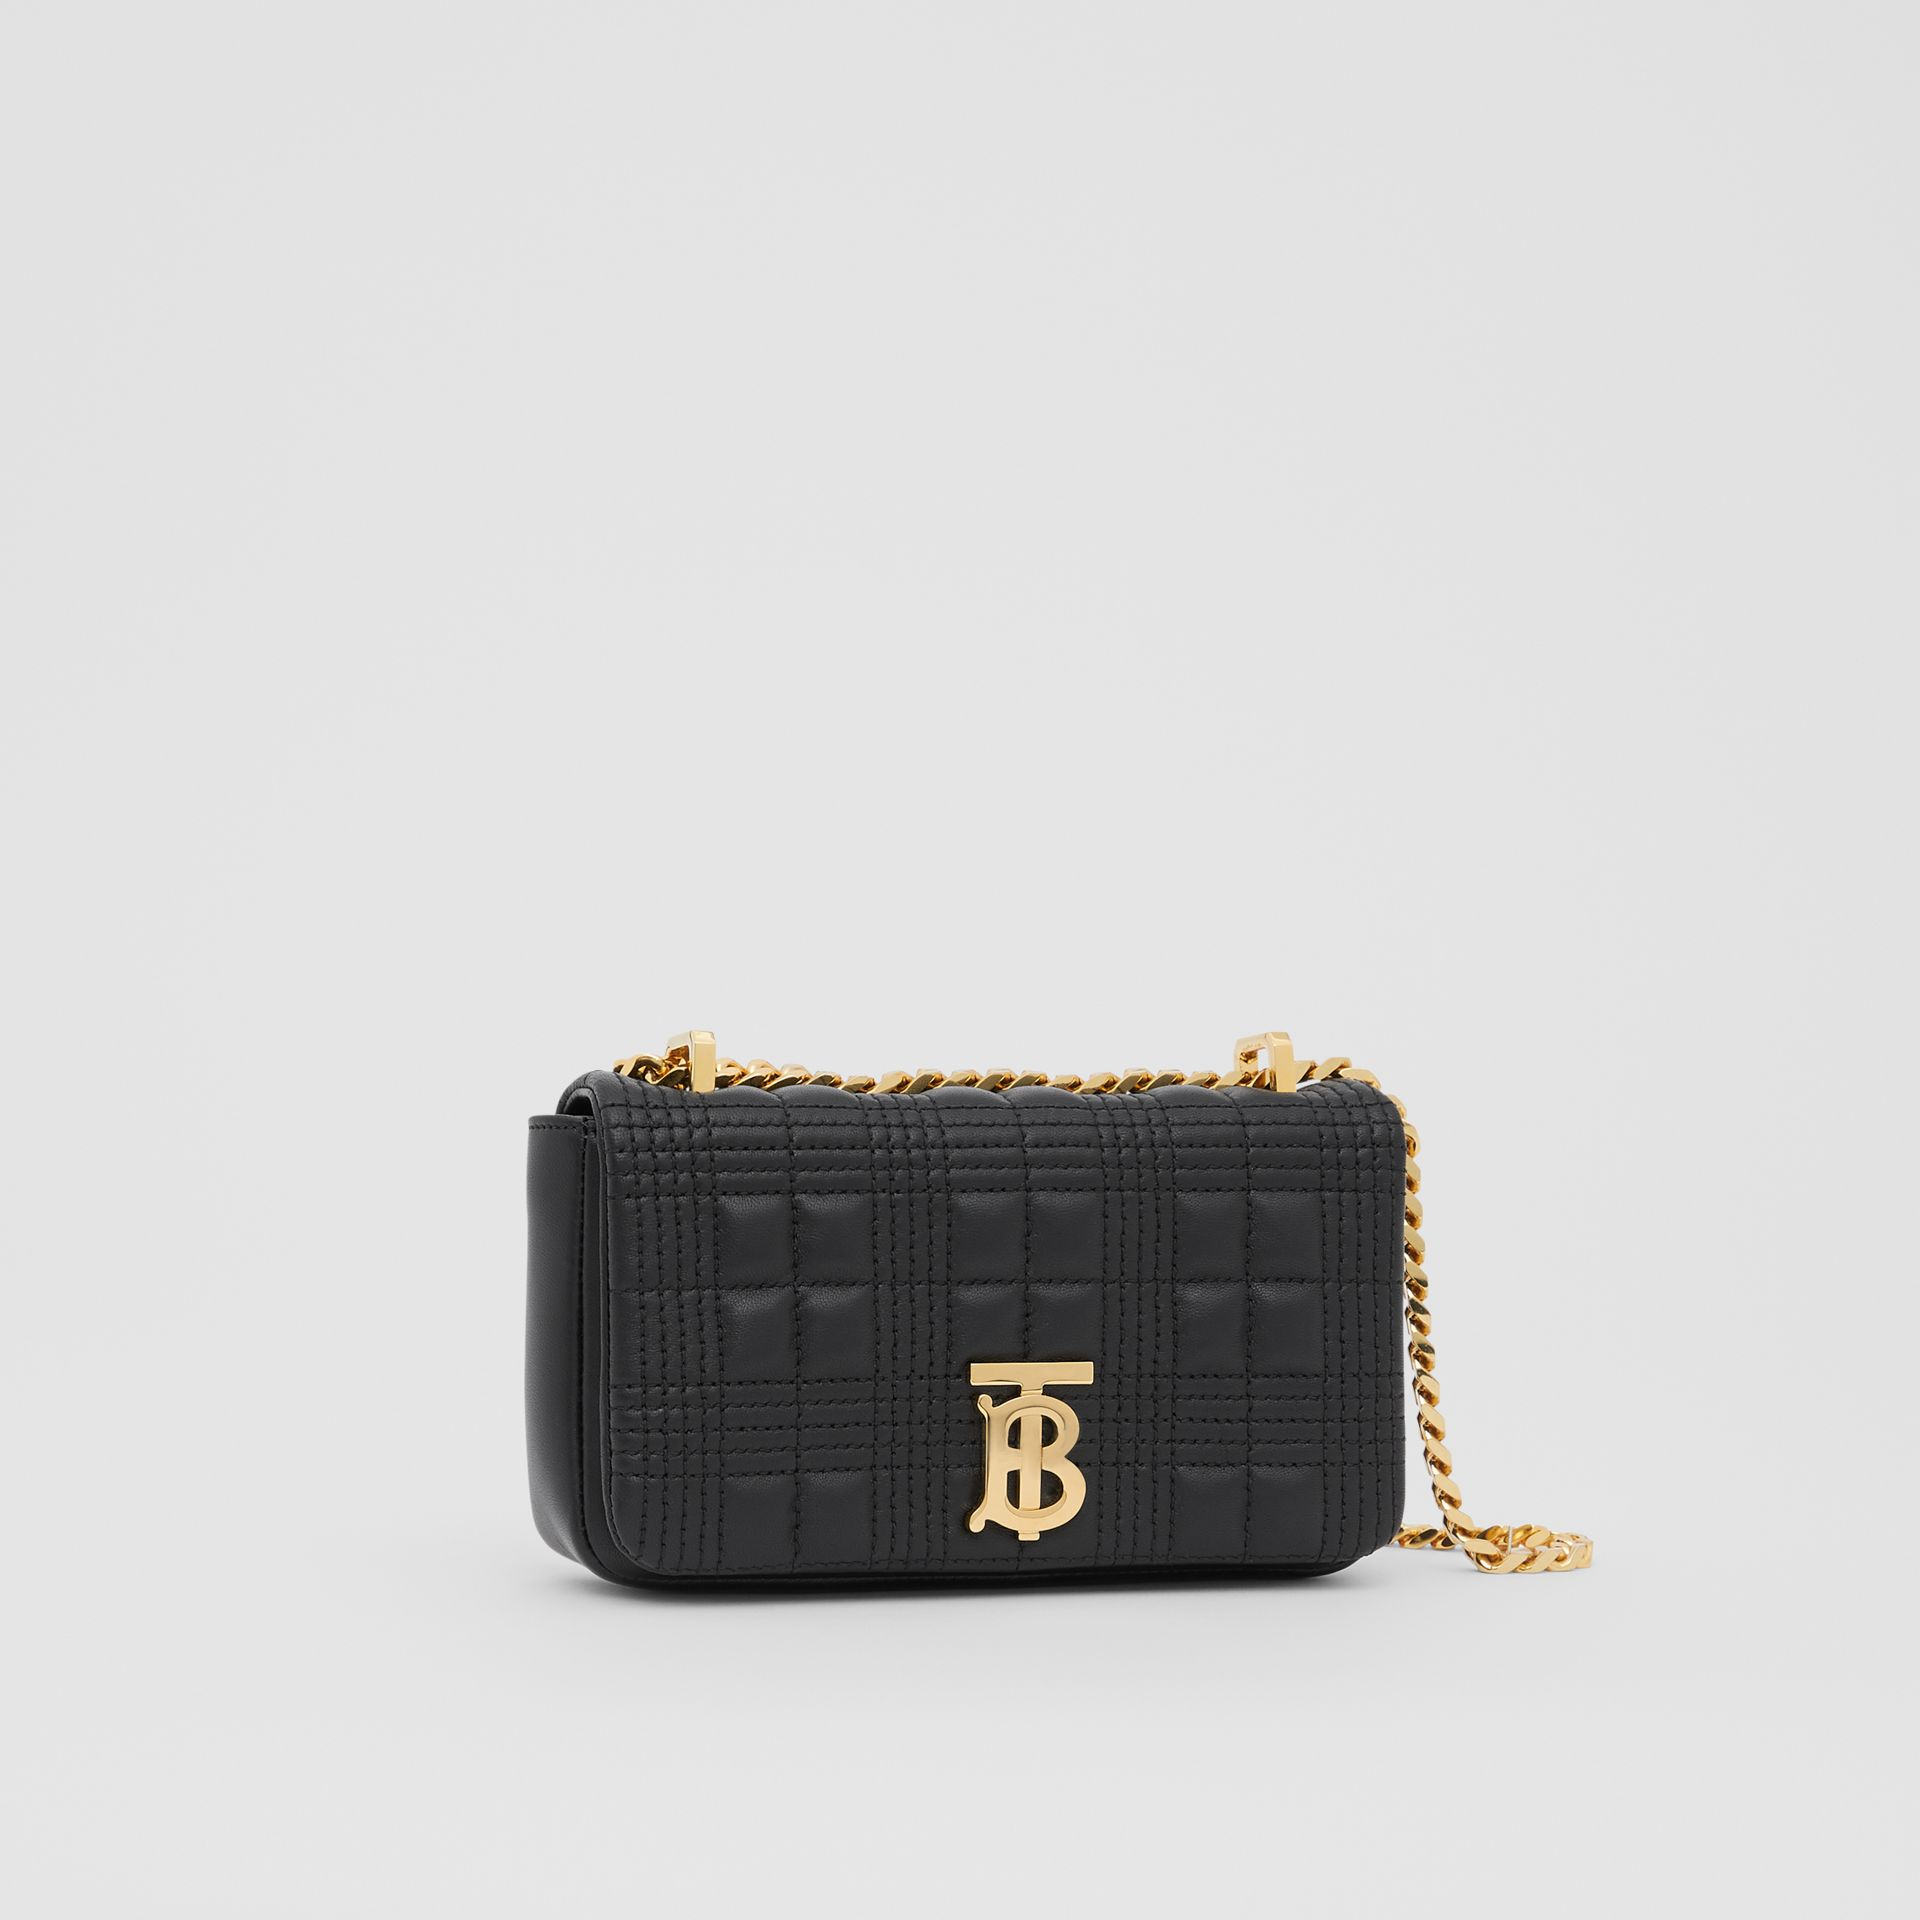 Mini Quilted Lambskin Lola Bag in Black - Women | Burberry - gallery image 4